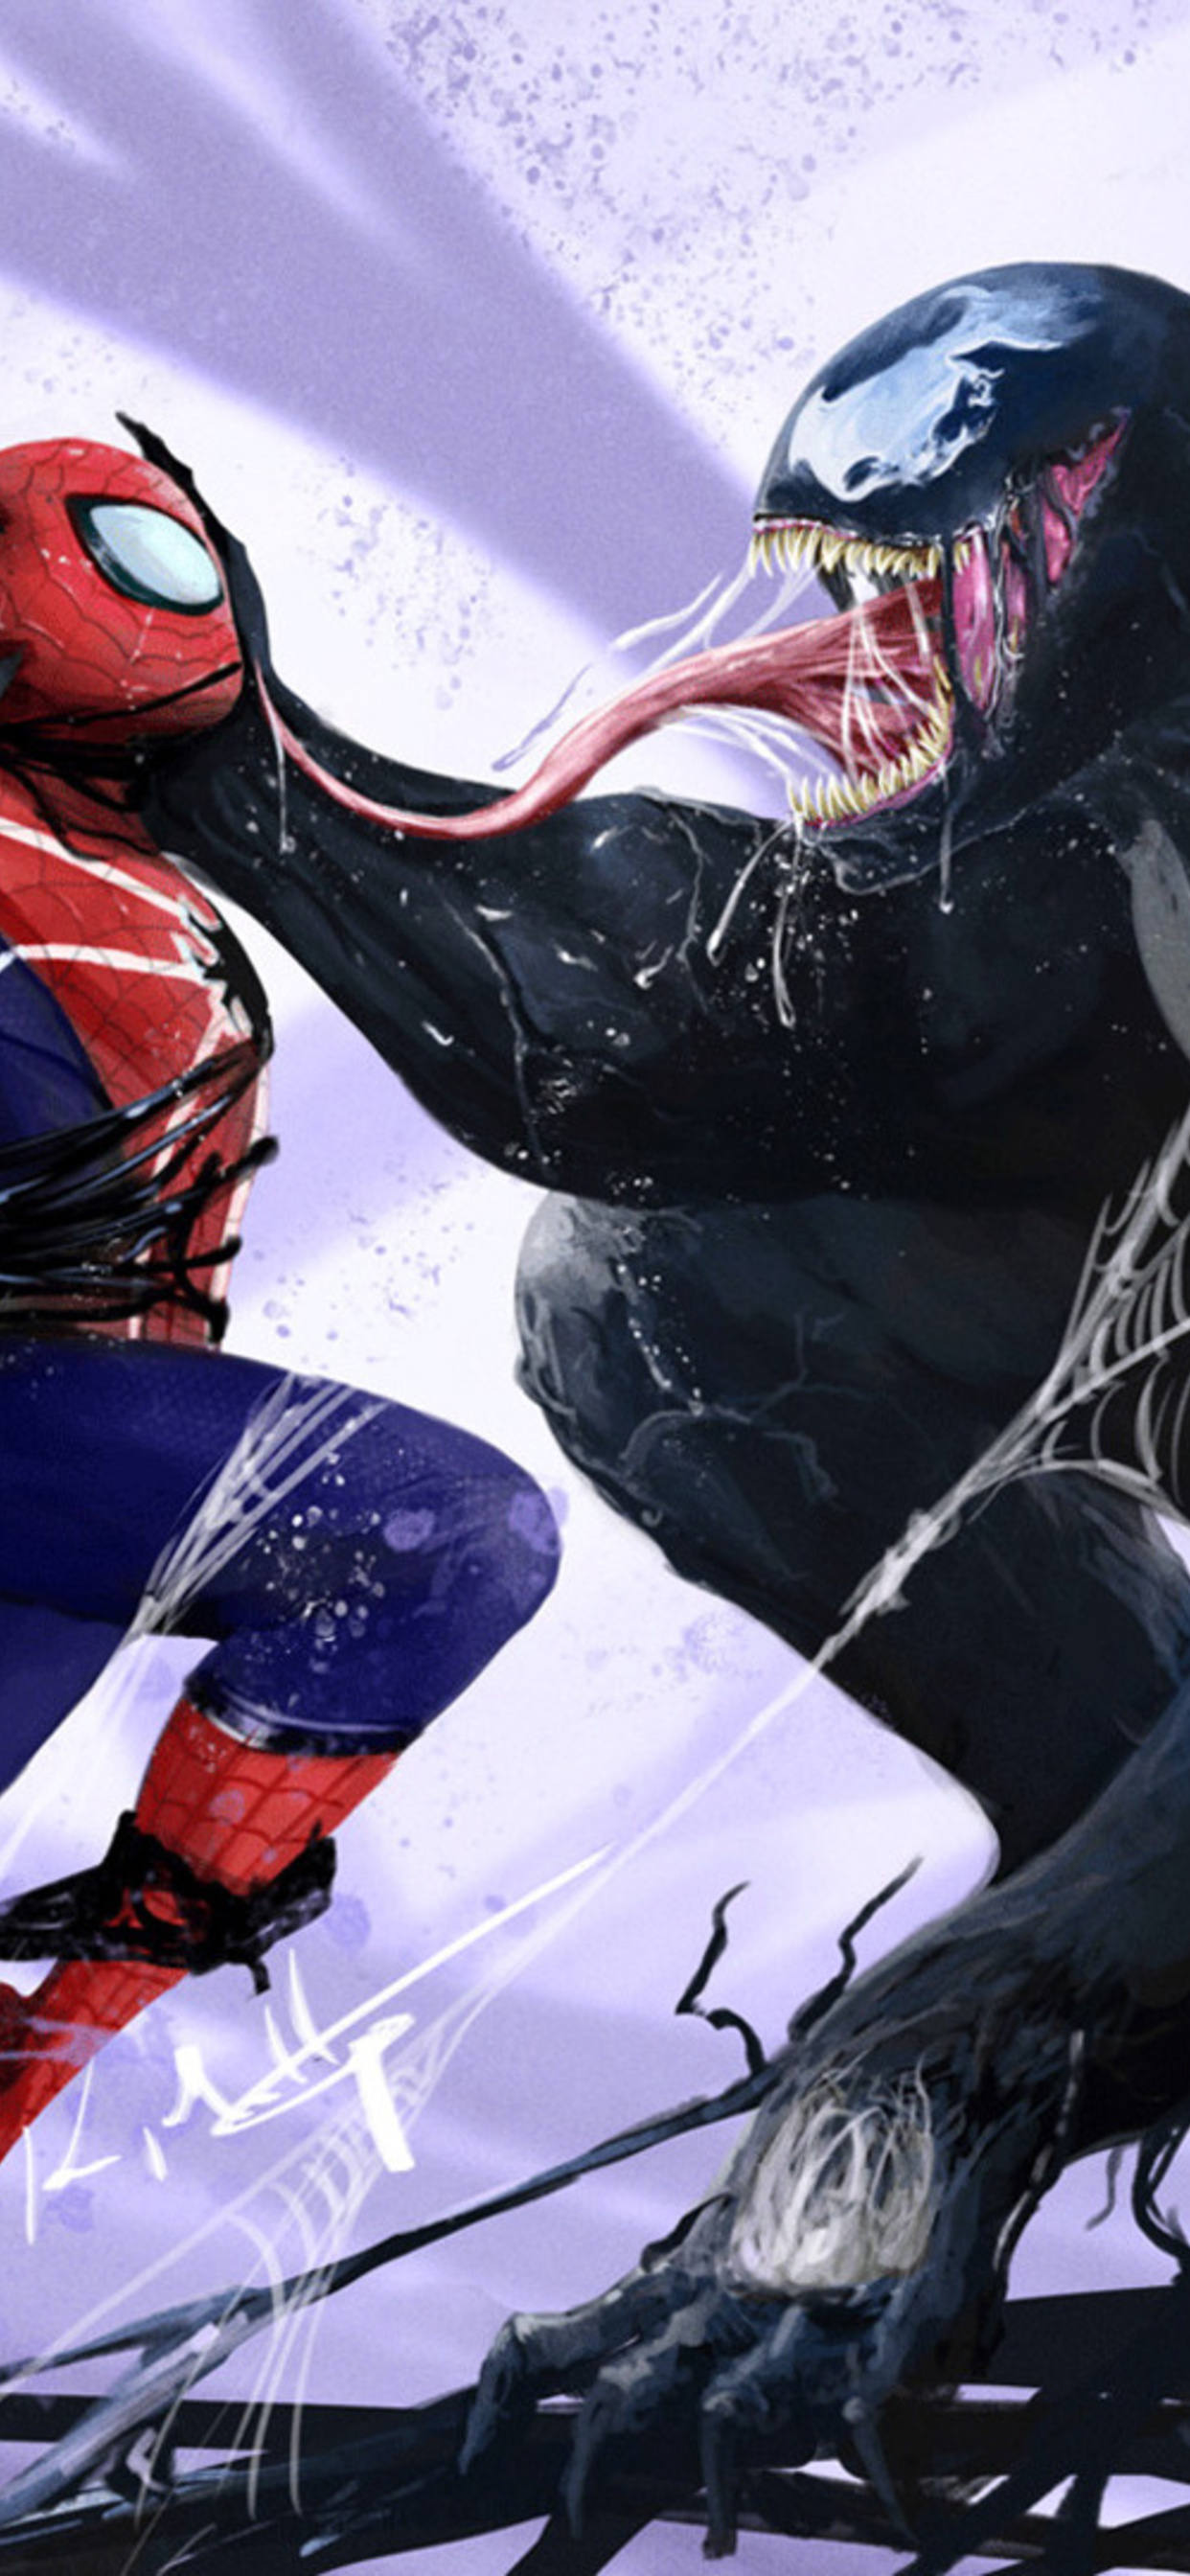 1242x2688 Spiderman Vs Venom Iphone Xs Max Hd 4k Wallpapers Images